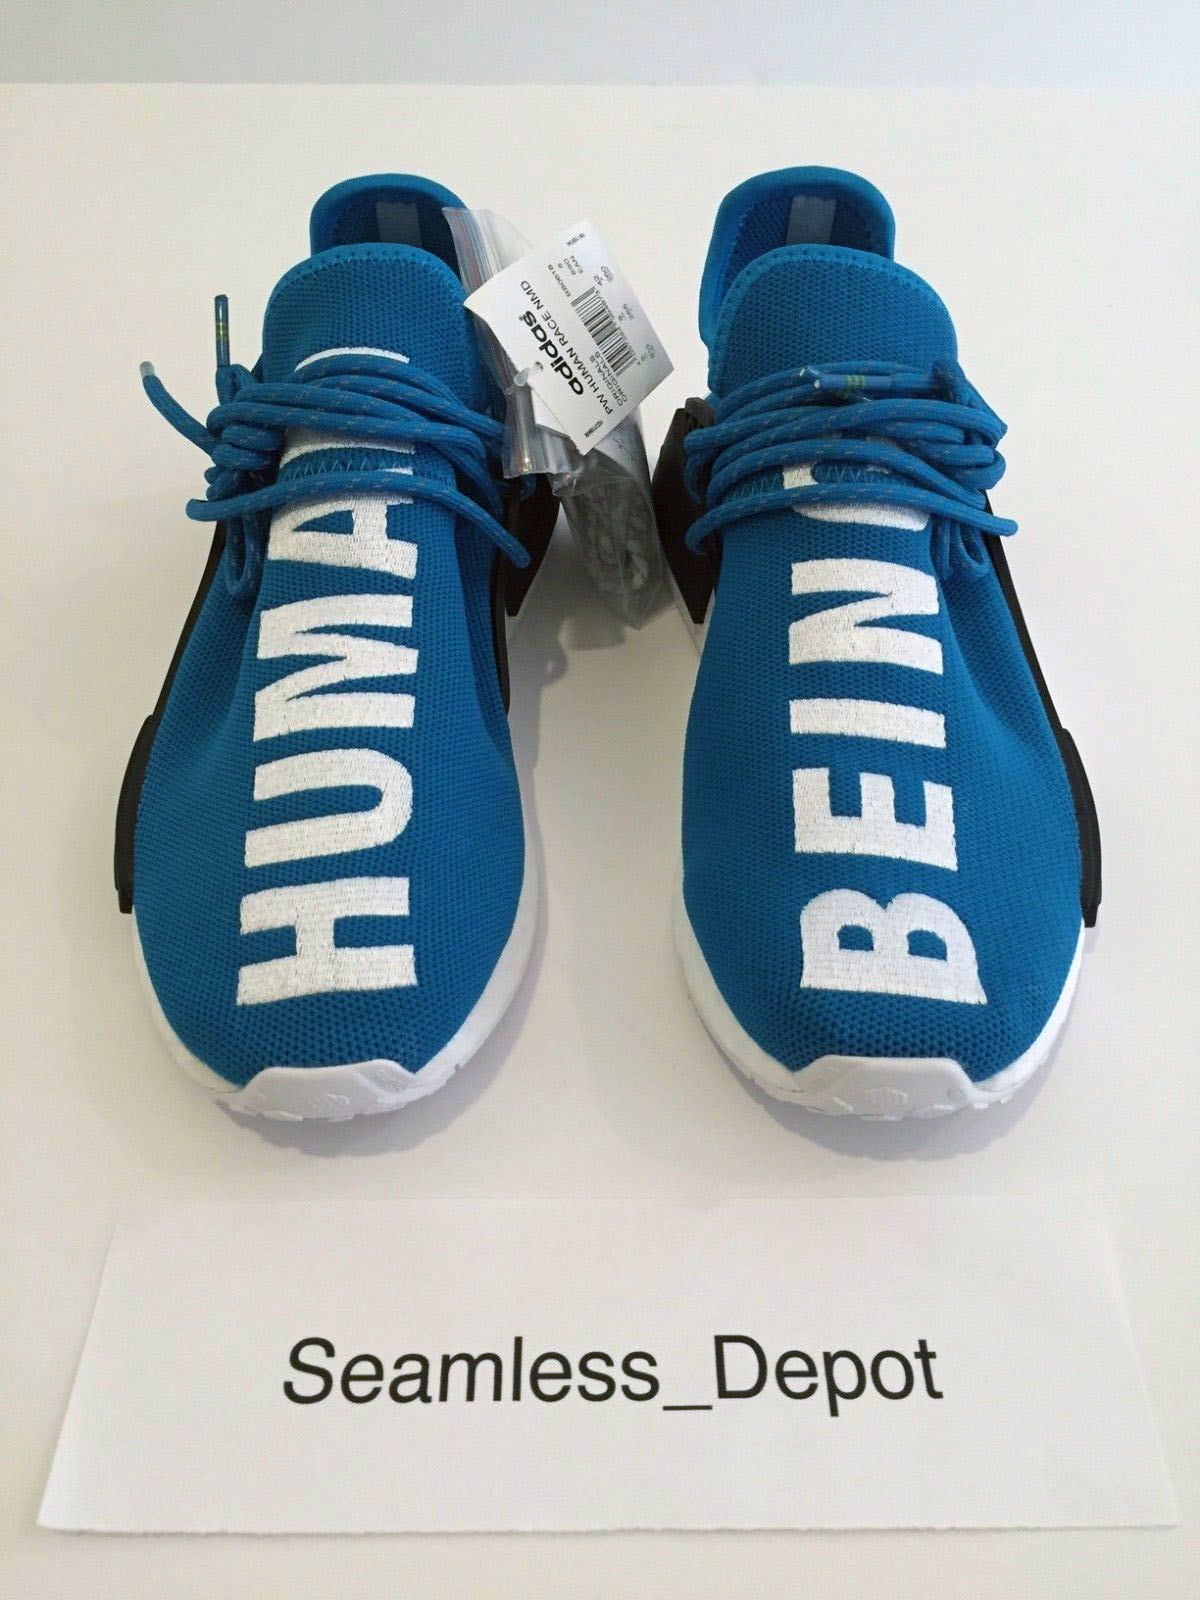 100% authentic 9543c cc7c1 New Limited Adidas x Pharrell HU Human Race NMD Boost Blue Colorway